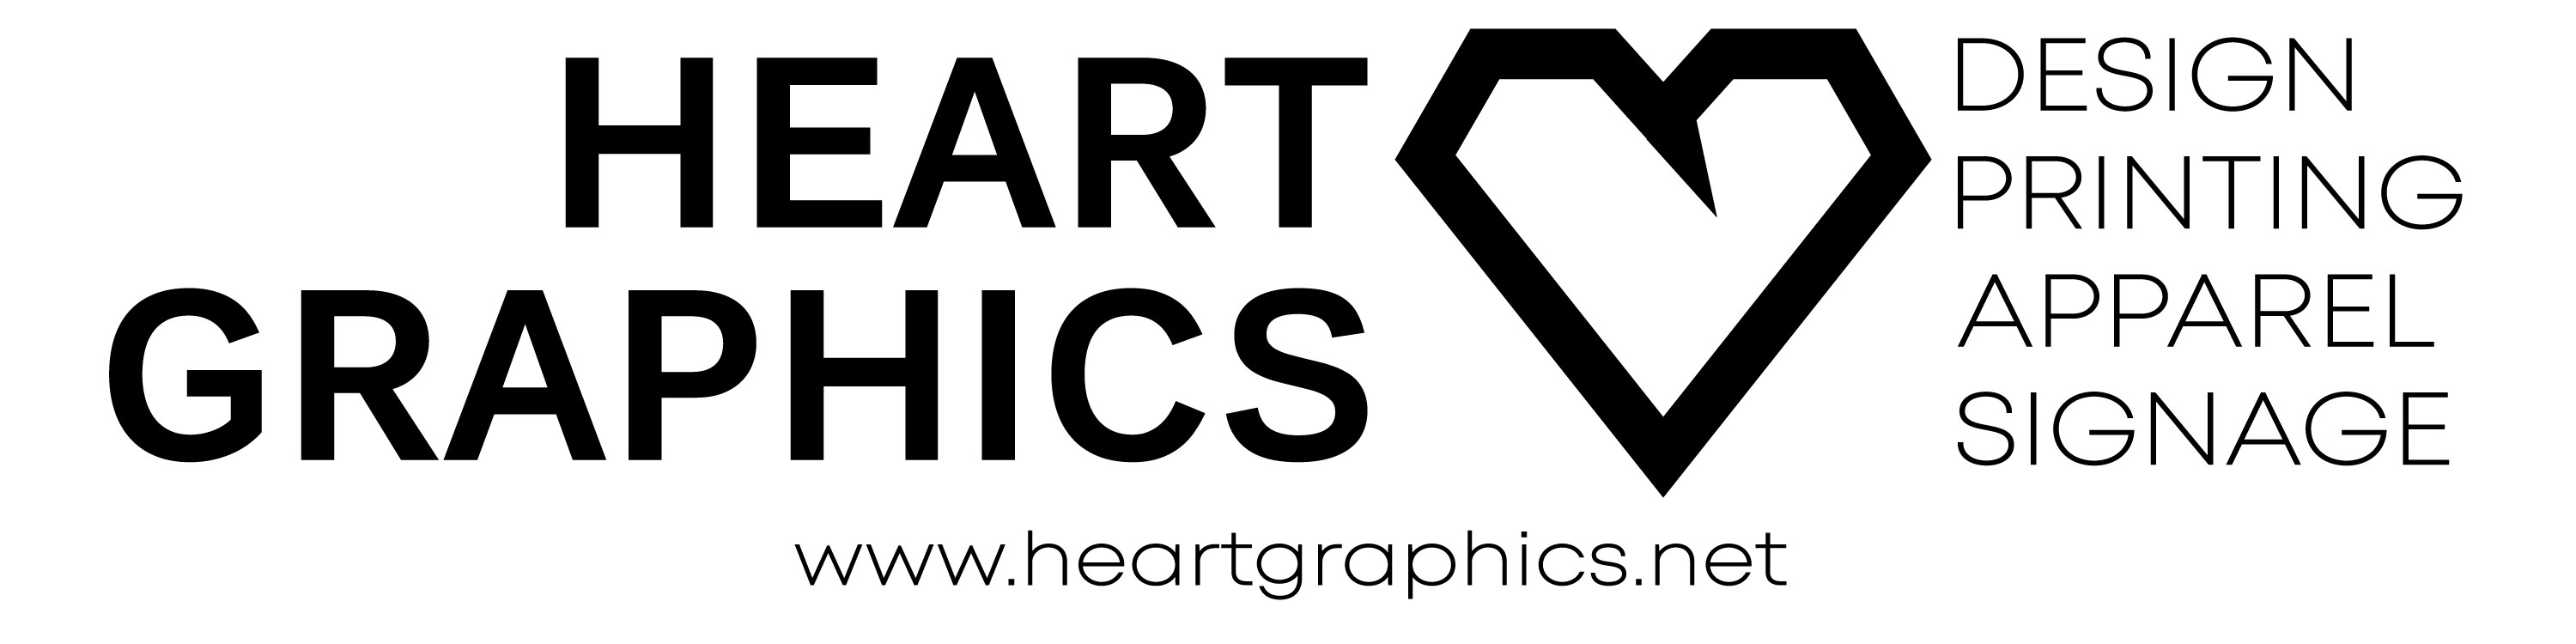 /Heart%20Graphics%20&%20Communications